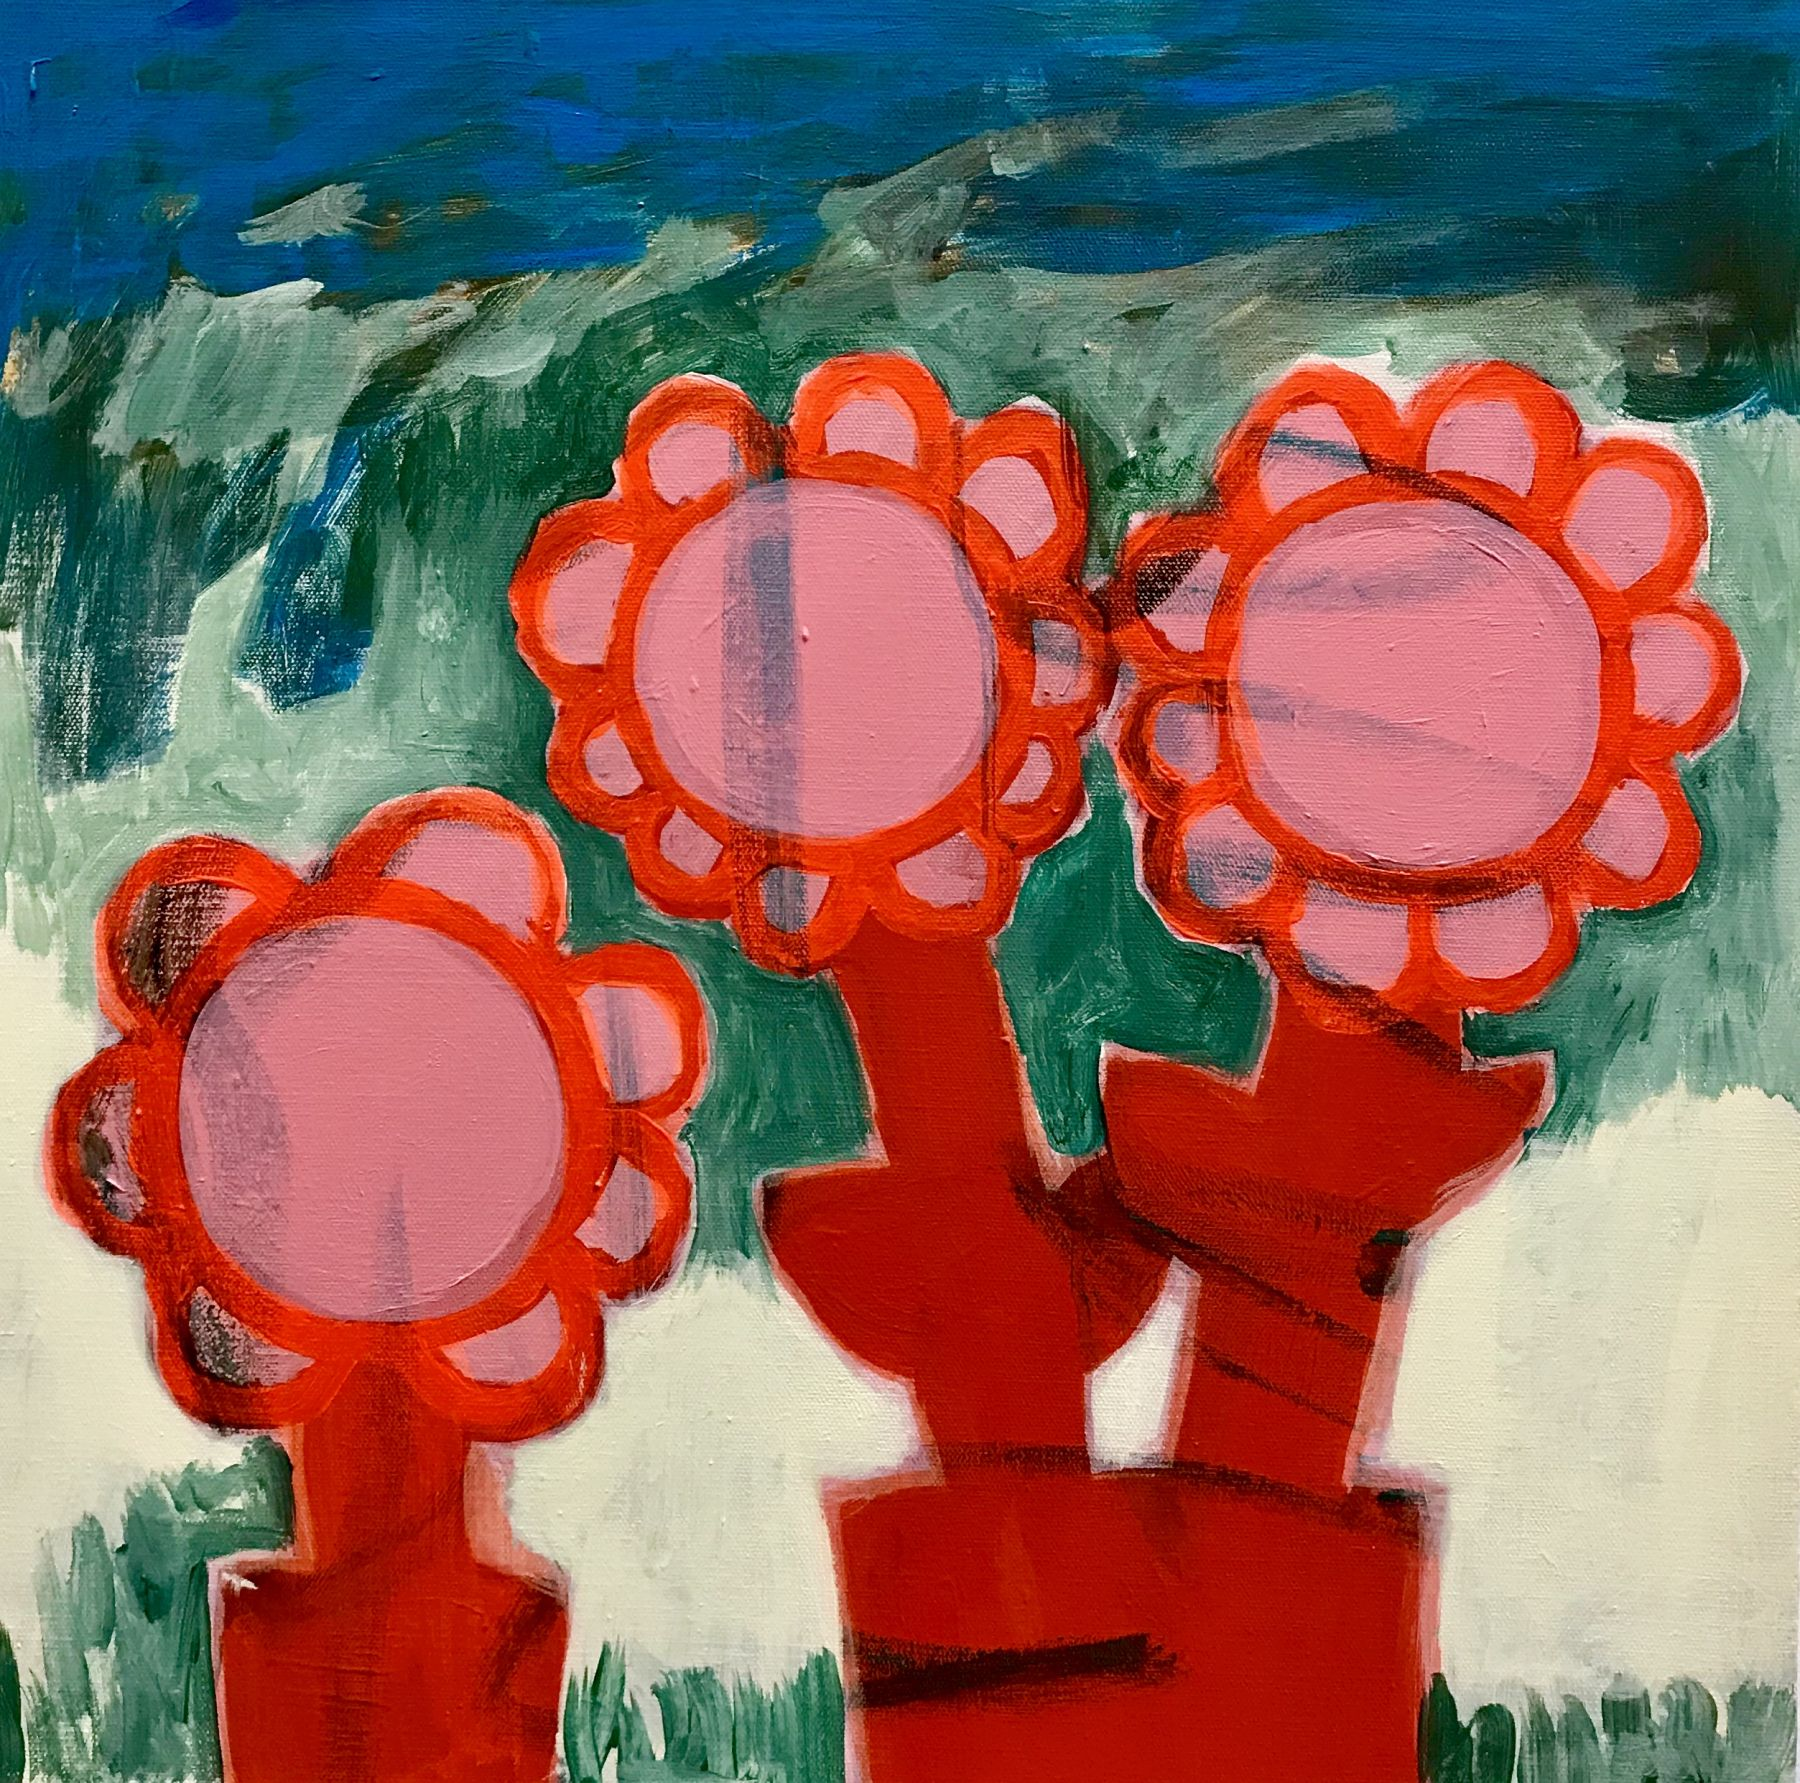 A painting by Ayse Wilson depicting three abstracted flowers. They're neon orange in front of patchy grass and a blue sky.